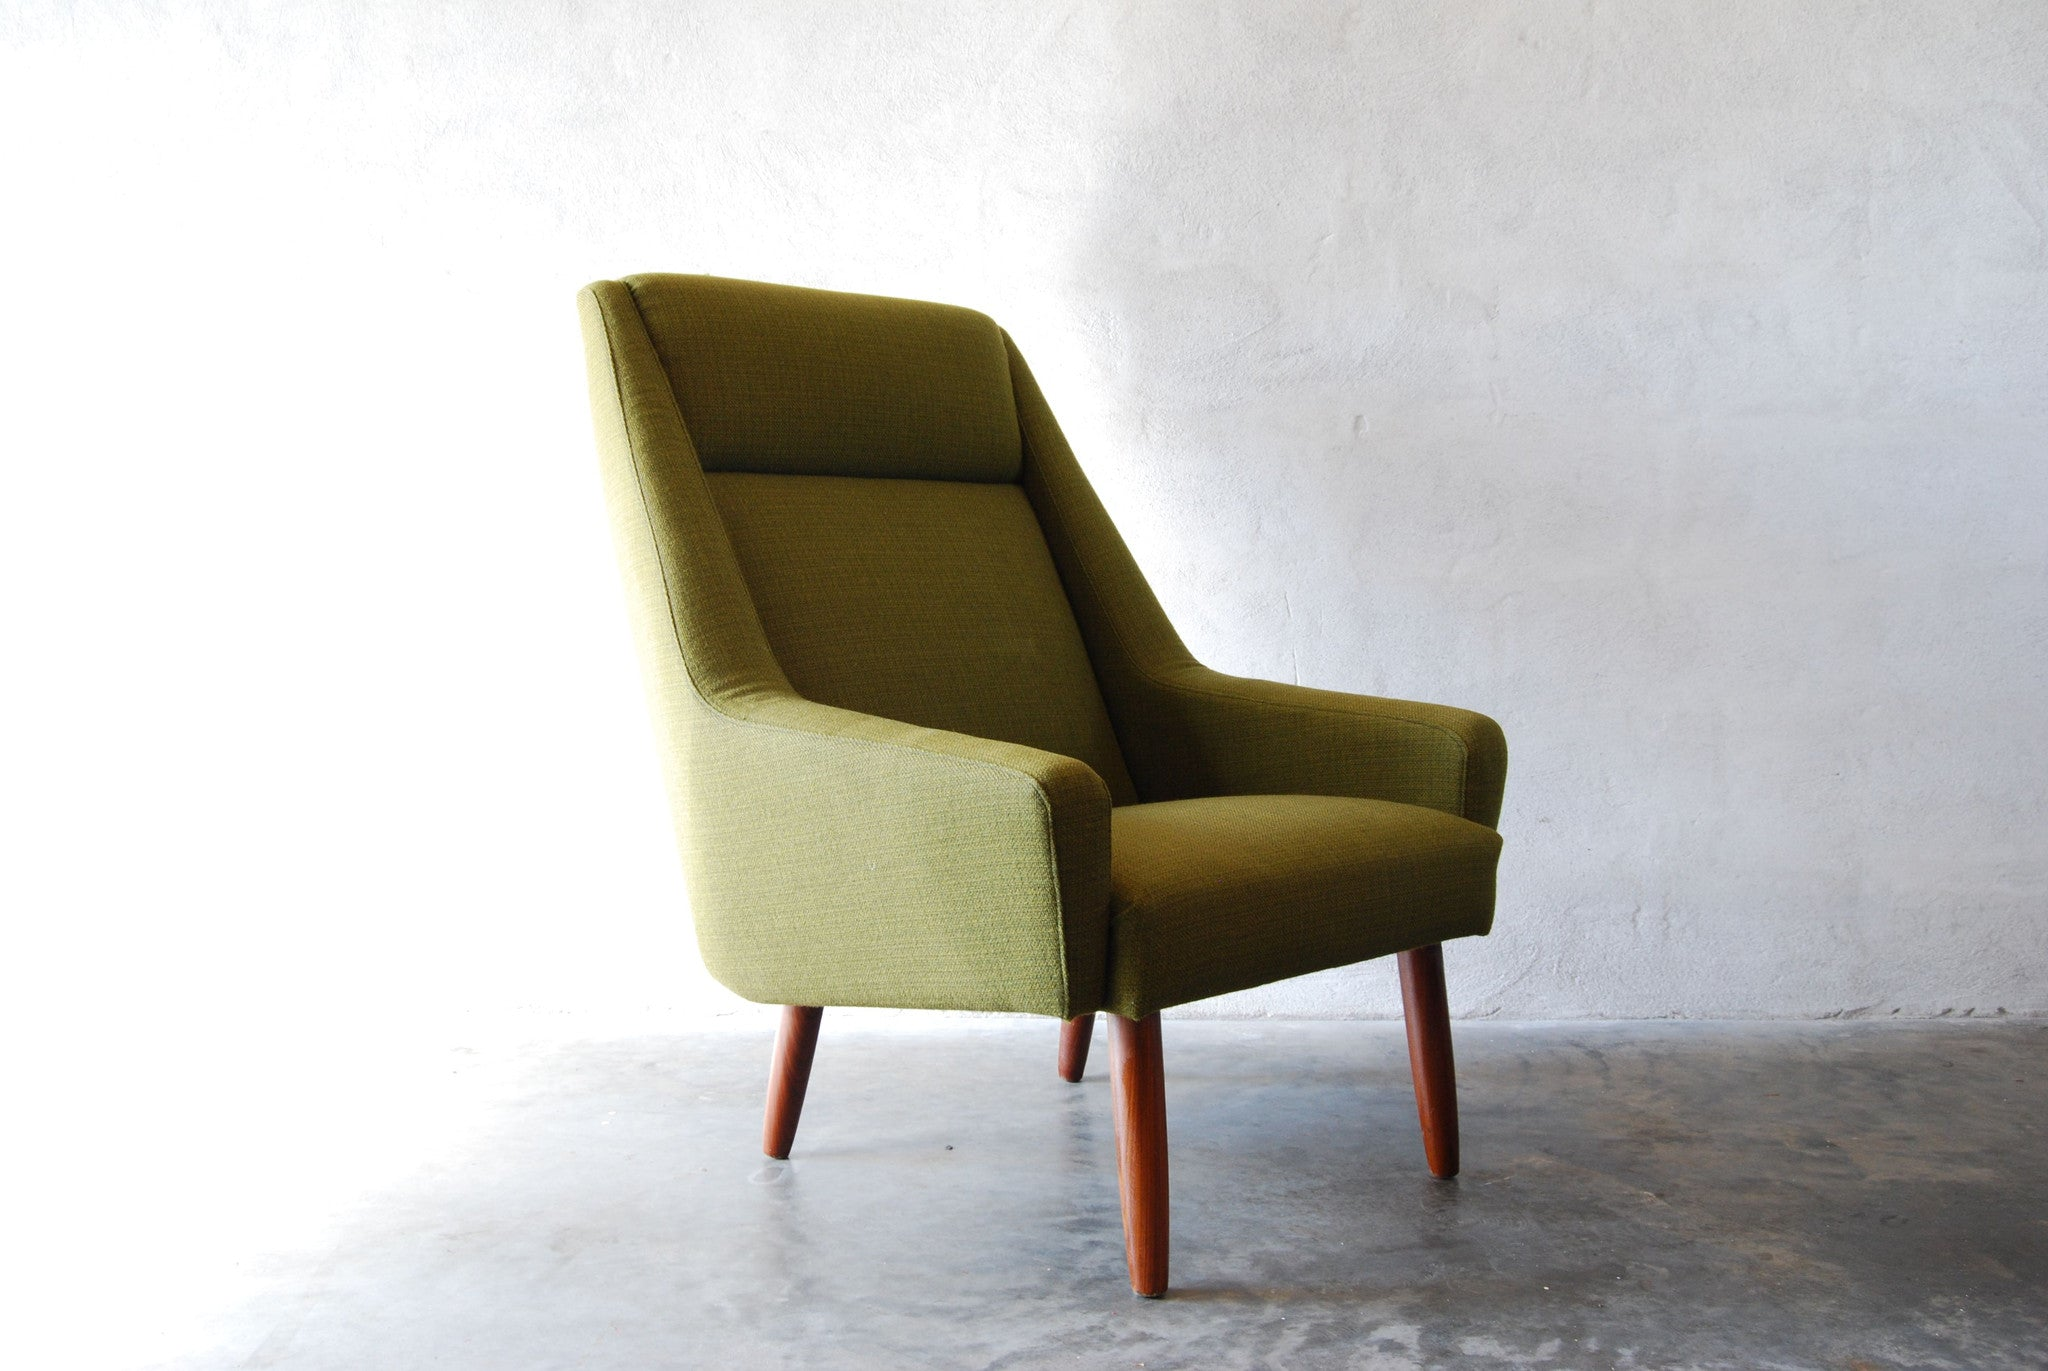 Lounge chair in forest wool